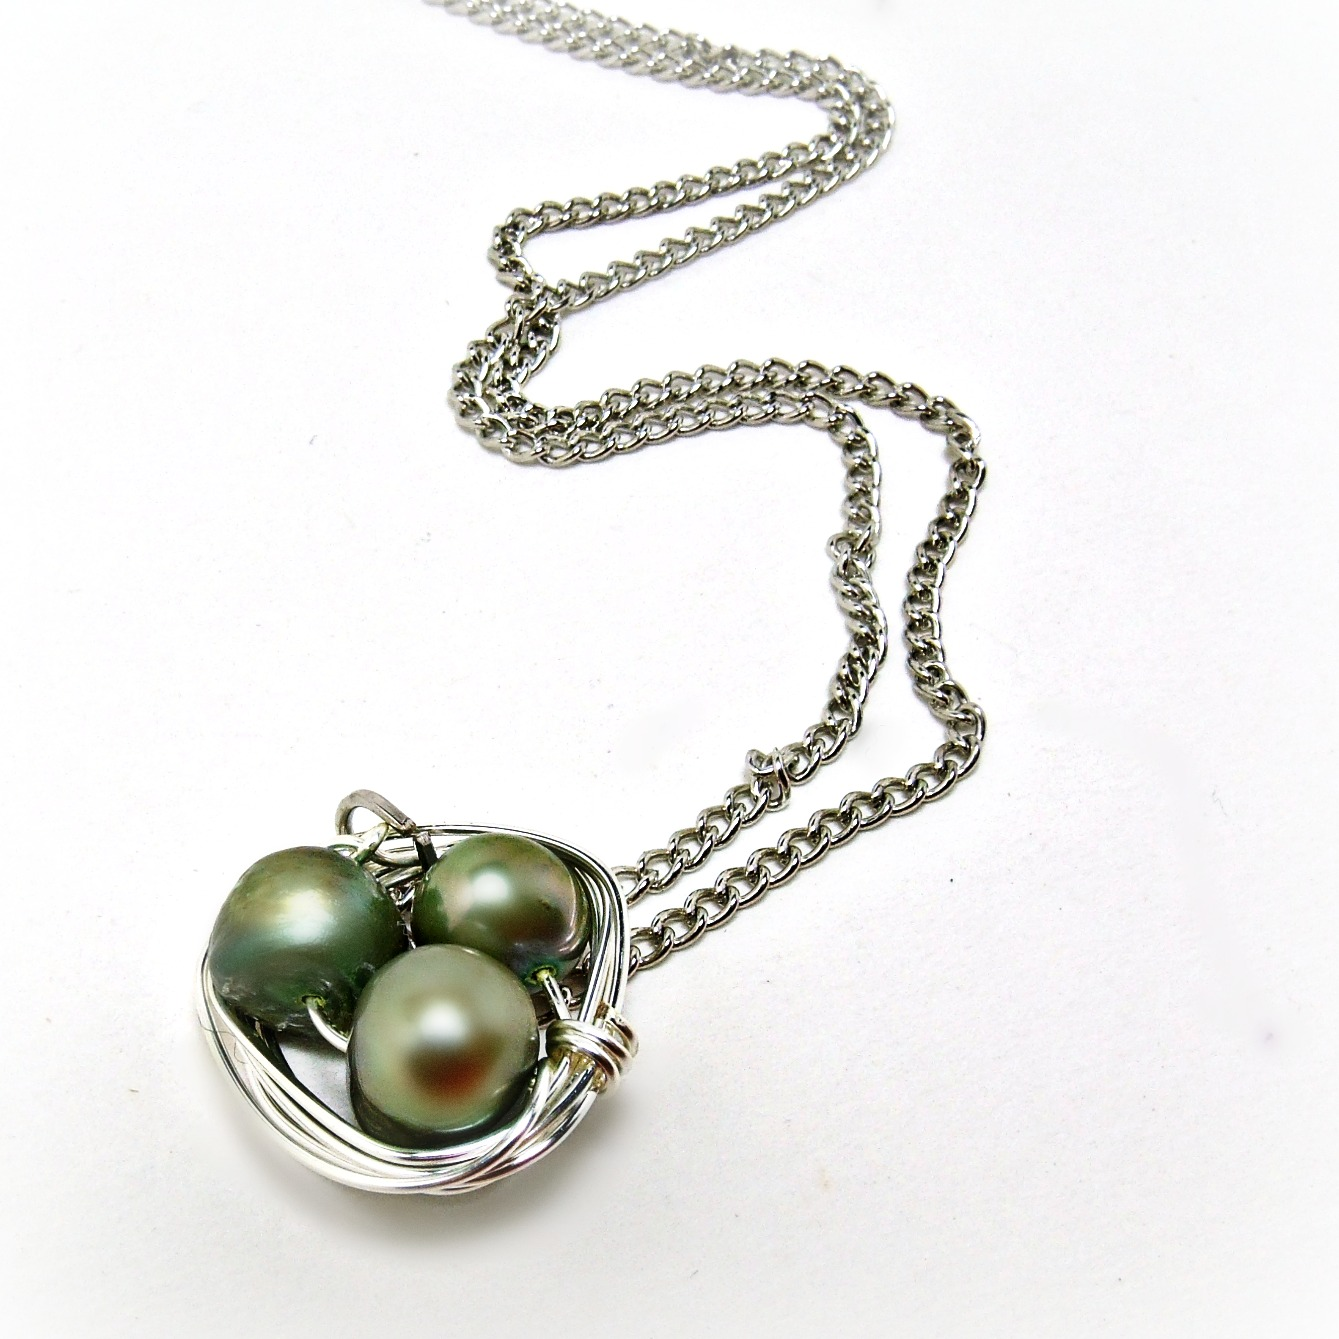 Wrapped Necklacepearl Necklacepearl Jewelry Forest Green Necklacepearl  Jewelry18 Inch Necklace Womens Gift Bridesmaid Giftgraduation Gift